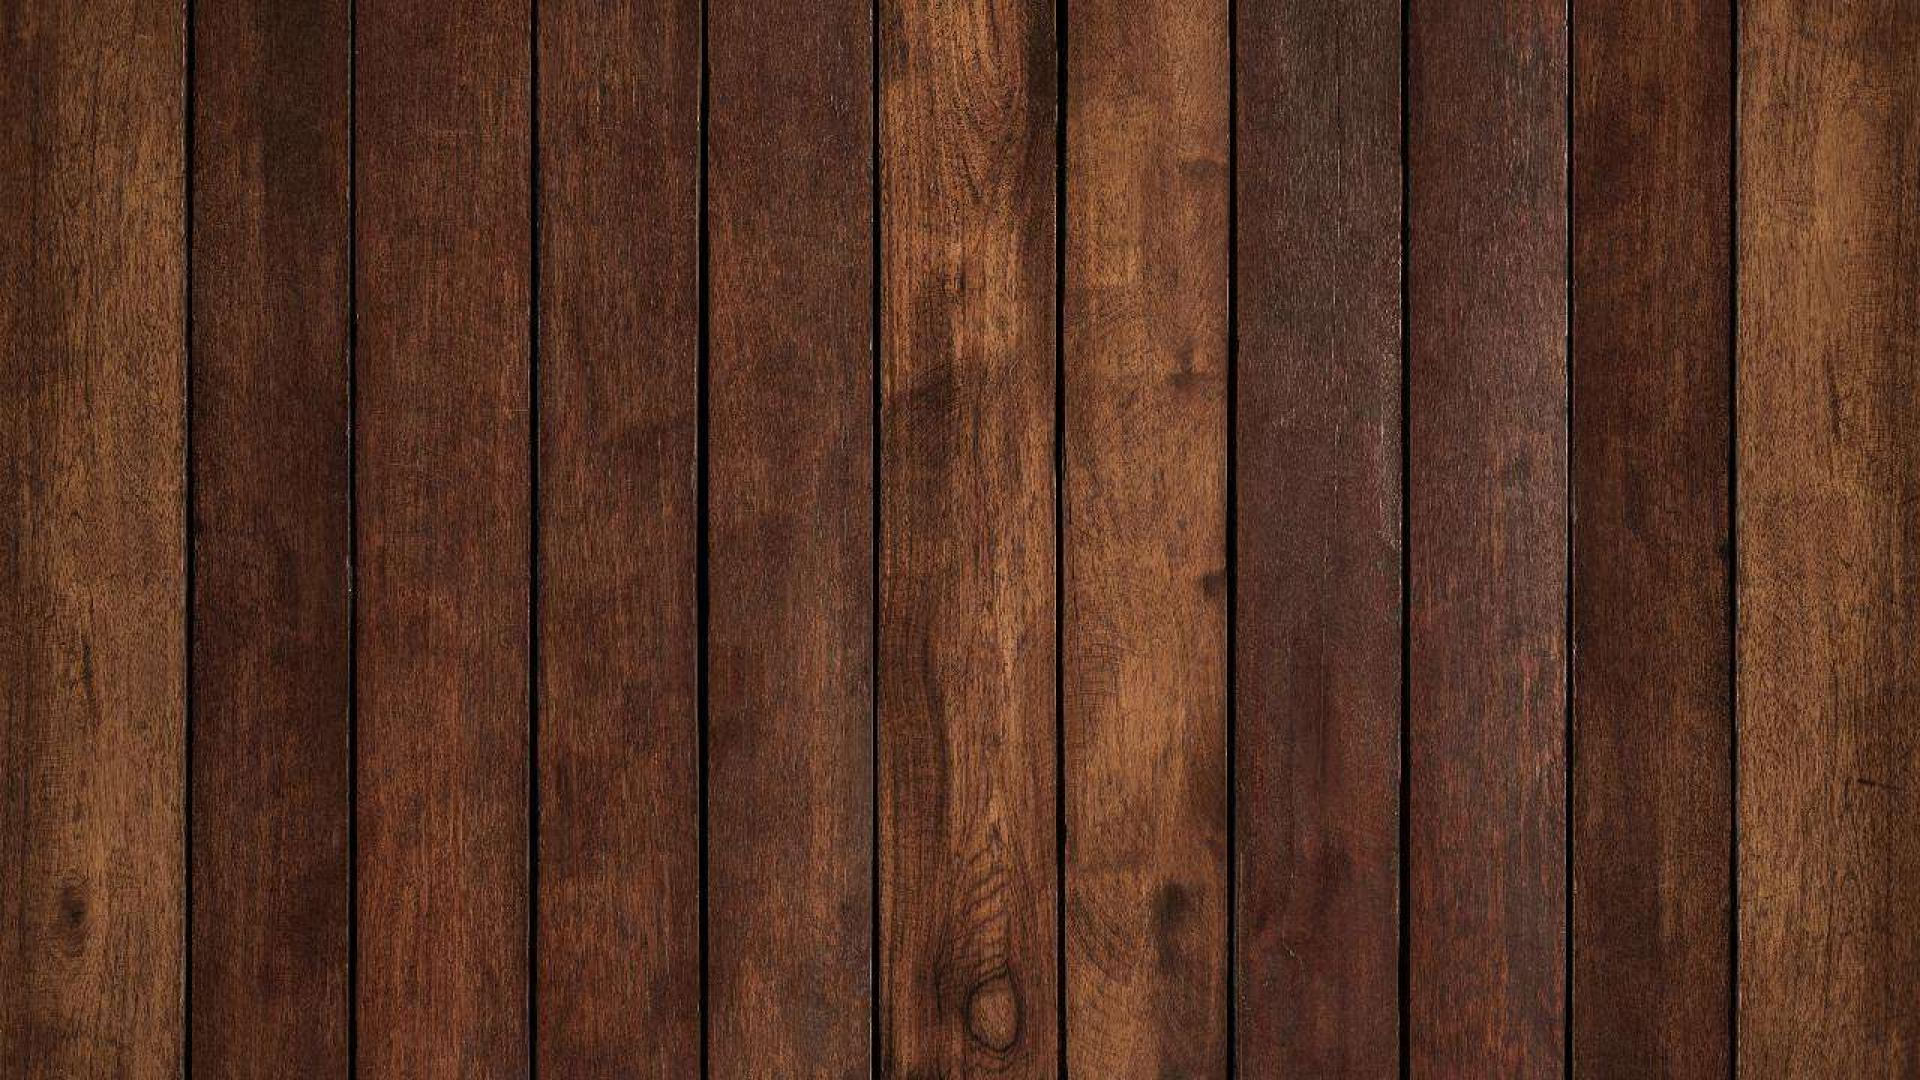 An Easy And Cheap Way To Update Wood Wall Paneling Rachael Ray Show